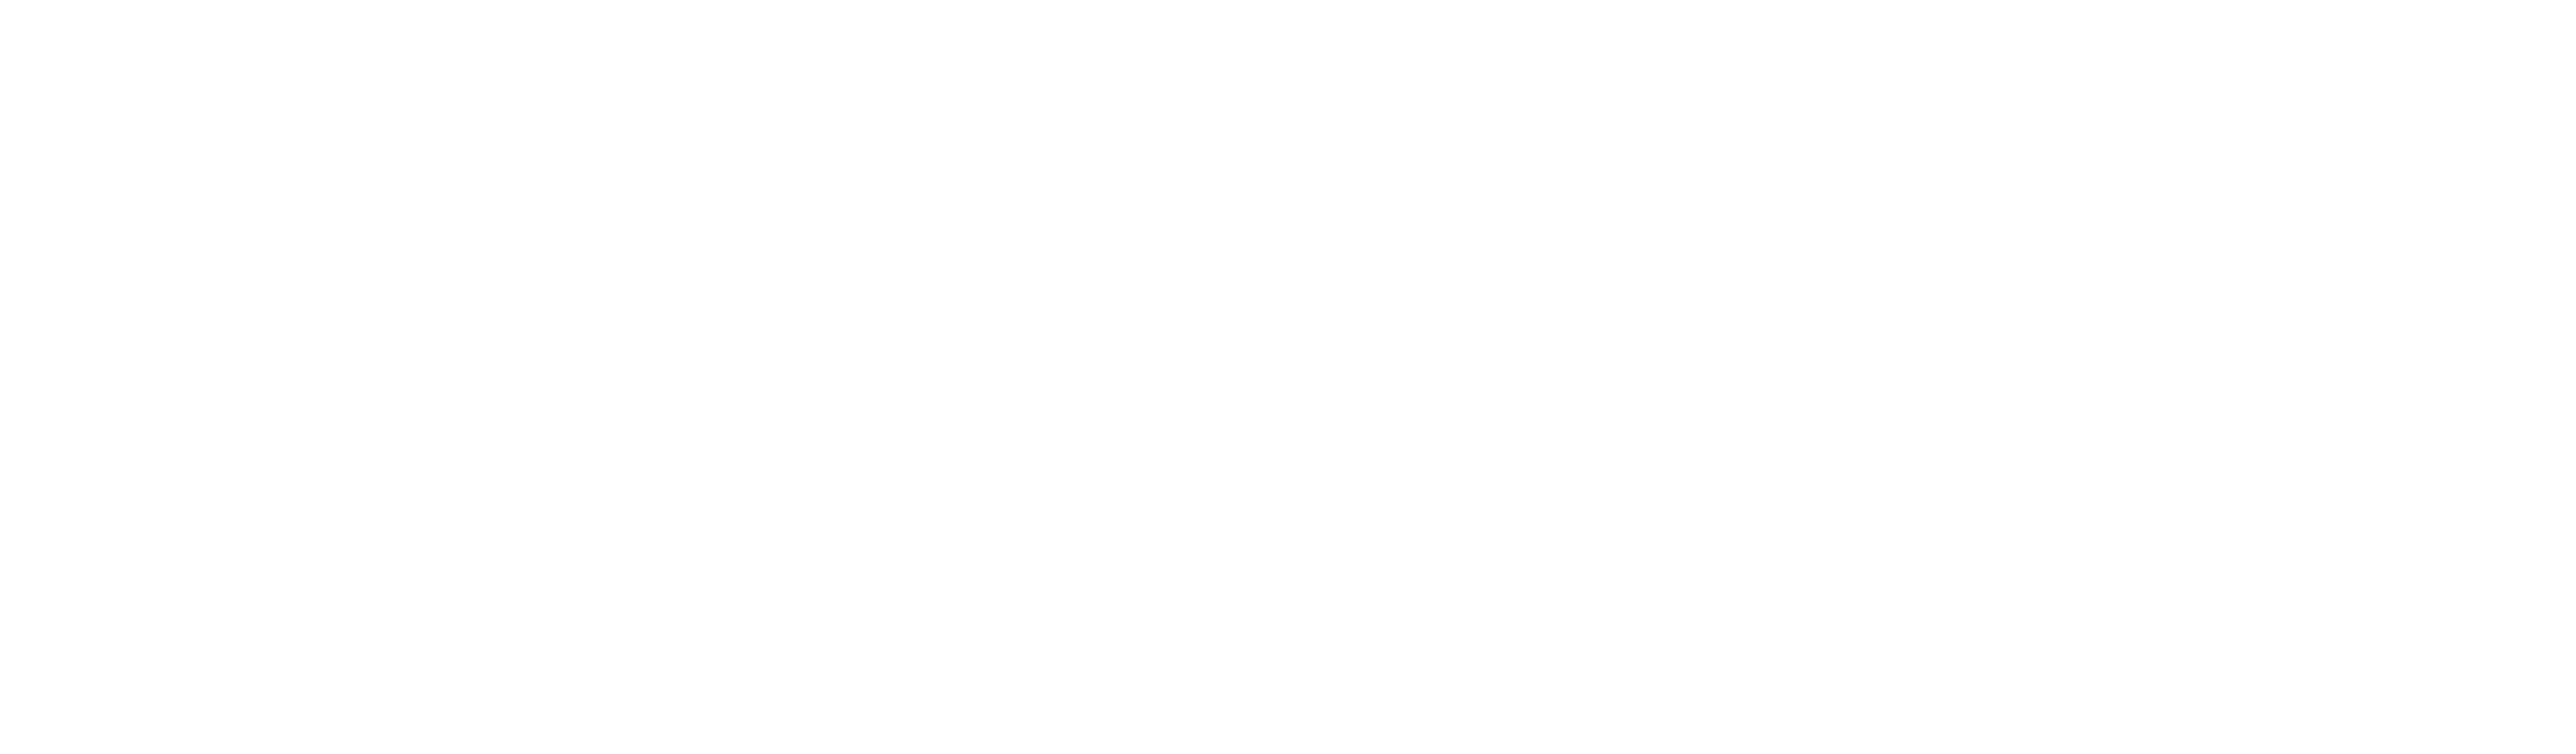 Honeysuckle Lane Floral & Gifts - Flower Delivery in Aurora, NE